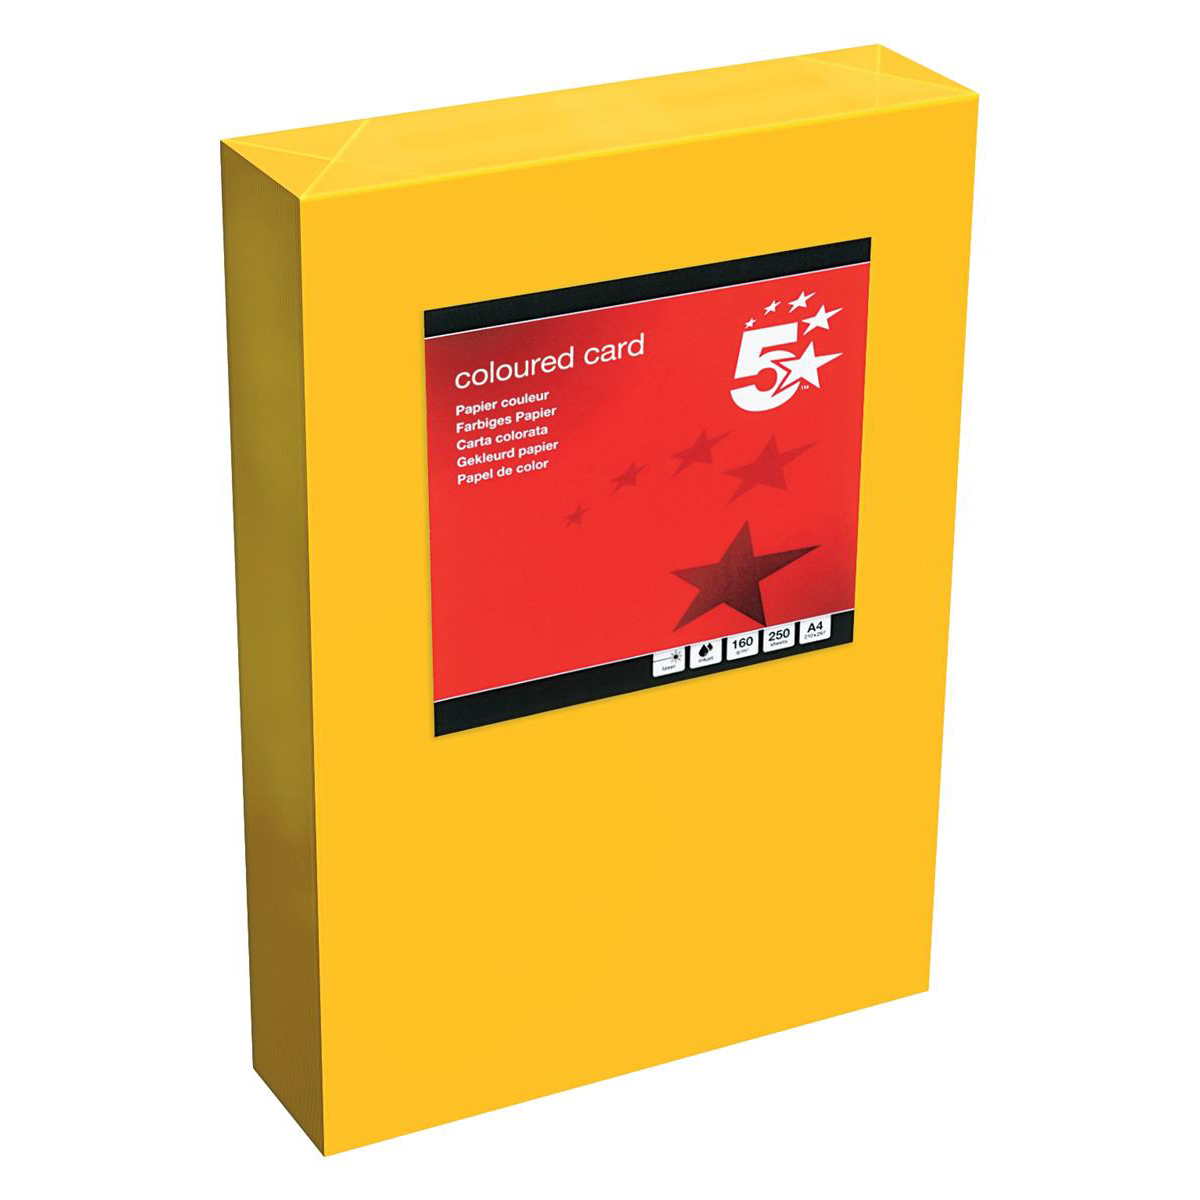 Card (160g+) 5 Star Office Coloured Card Tinted 160gsm A4 Deep Orange Pack 250